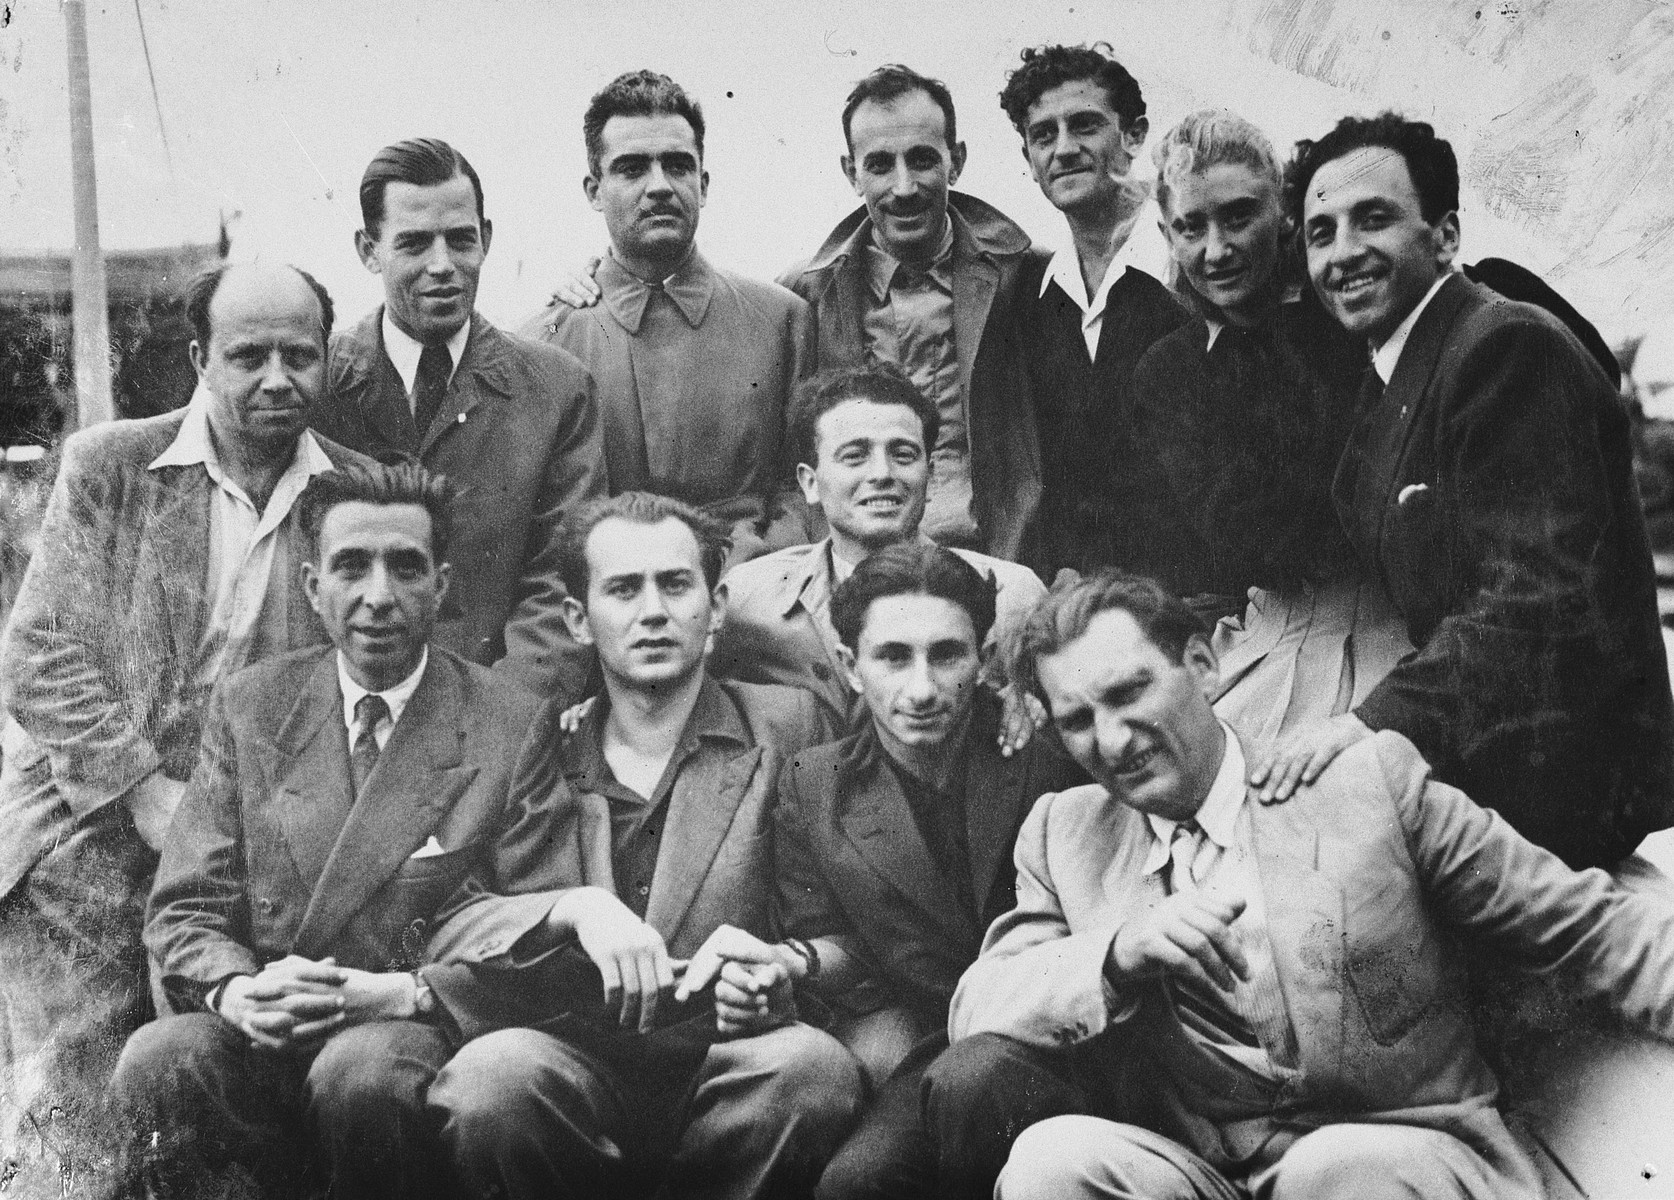 Group portrait of Jewish DPs at the Migdalor hachshara, a maritime Zionist collective in Fano, Italy.  From right to left.  First row: unknown, Shliamovits, Meir Mekel.  Second row: Karola, an emissary from Kibbutz Tel Yitzhak in Israel.  Back row;  Shmuel Bergson, the leader, (right).